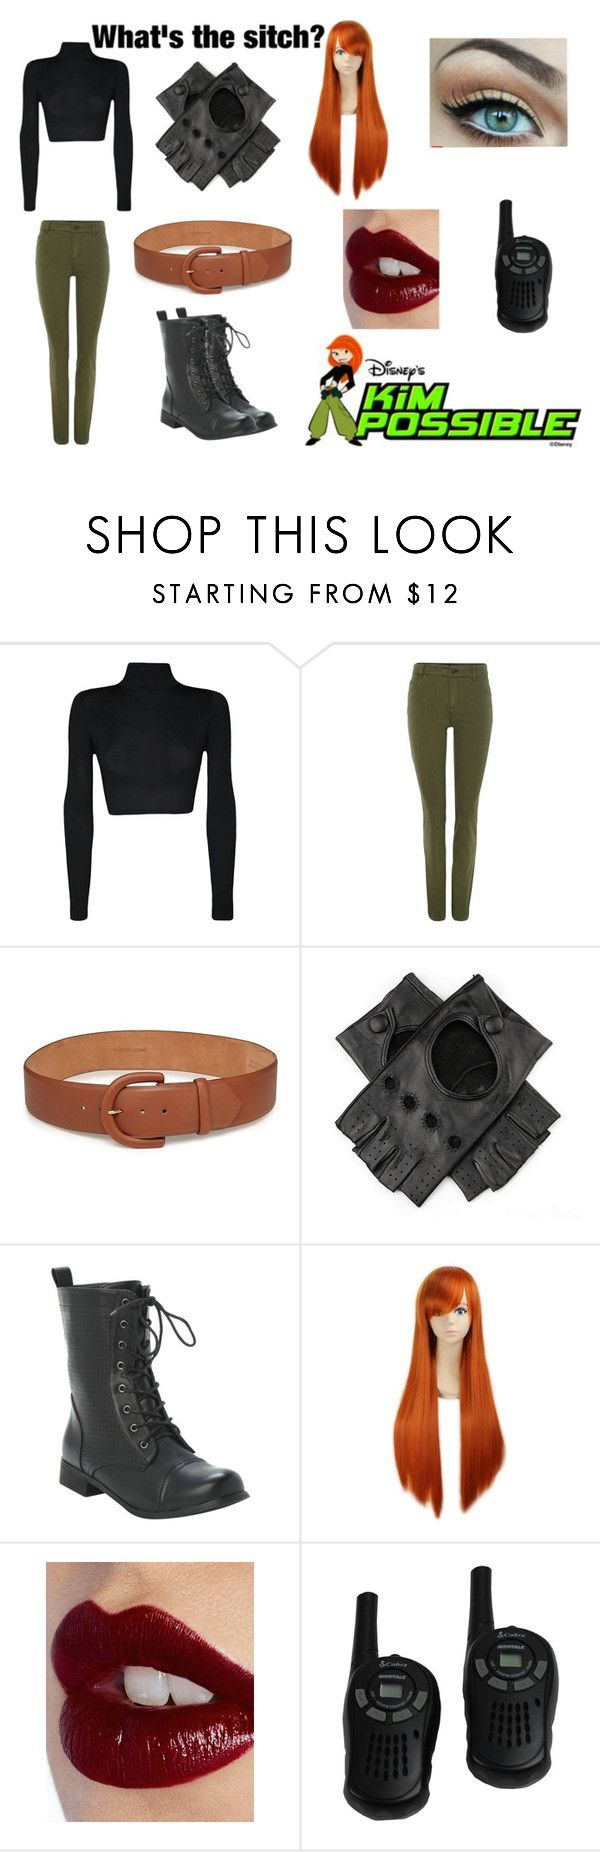 """""""Kim Possible costume"""" by the-professional-fangirl ❤ liked on Polyvore featuring WearAll, Oui, Disney, W.Kleinberg and Charlotte Tilbury"""